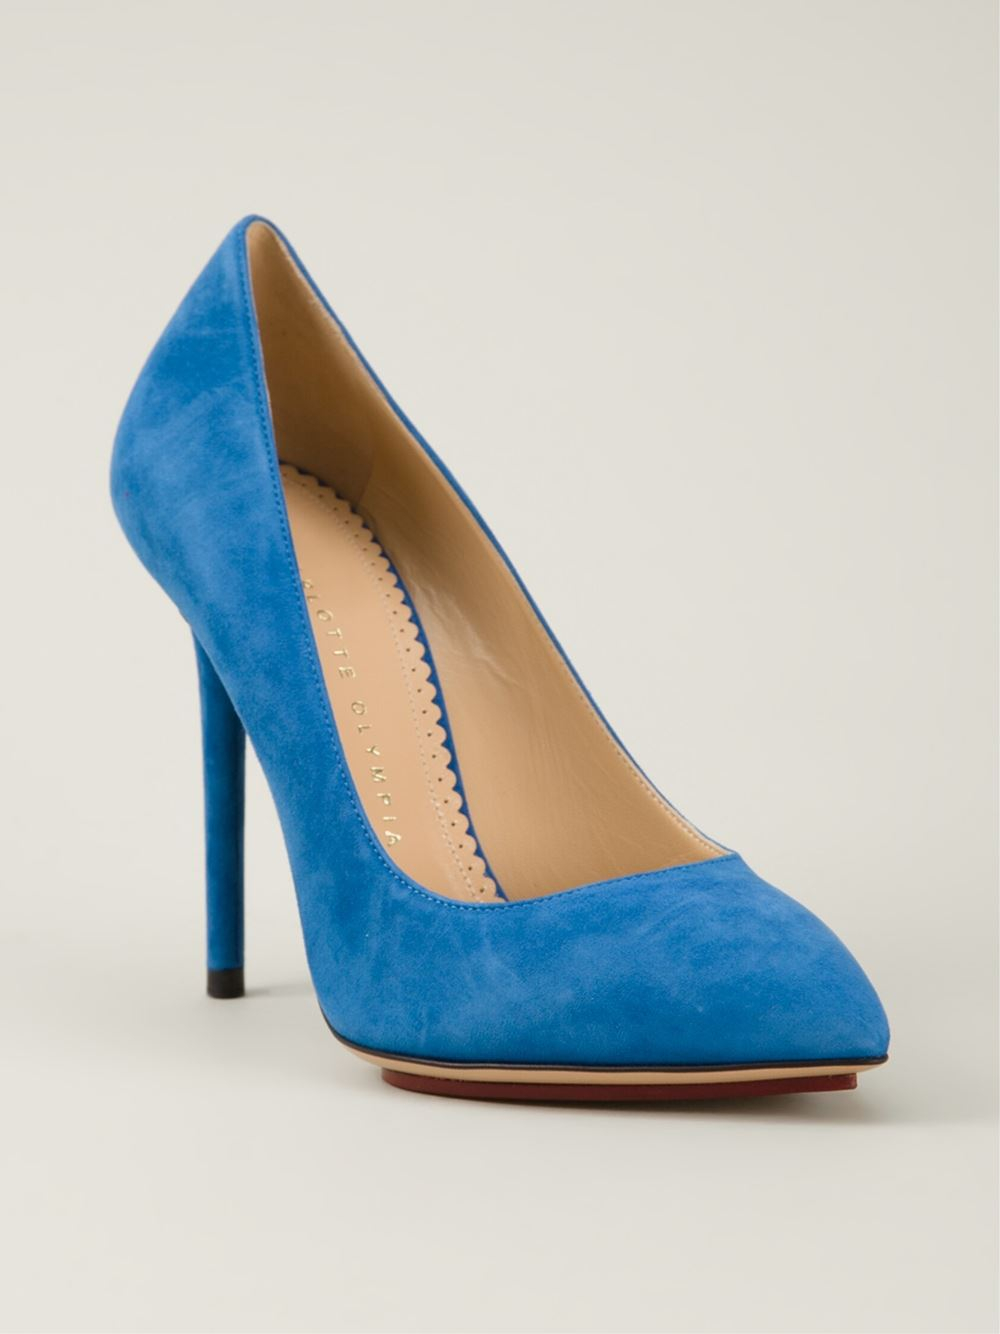 charlotte olympia 39 monroe 39 pumps in blue lyst. Black Bedroom Furniture Sets. Home Design Ideas